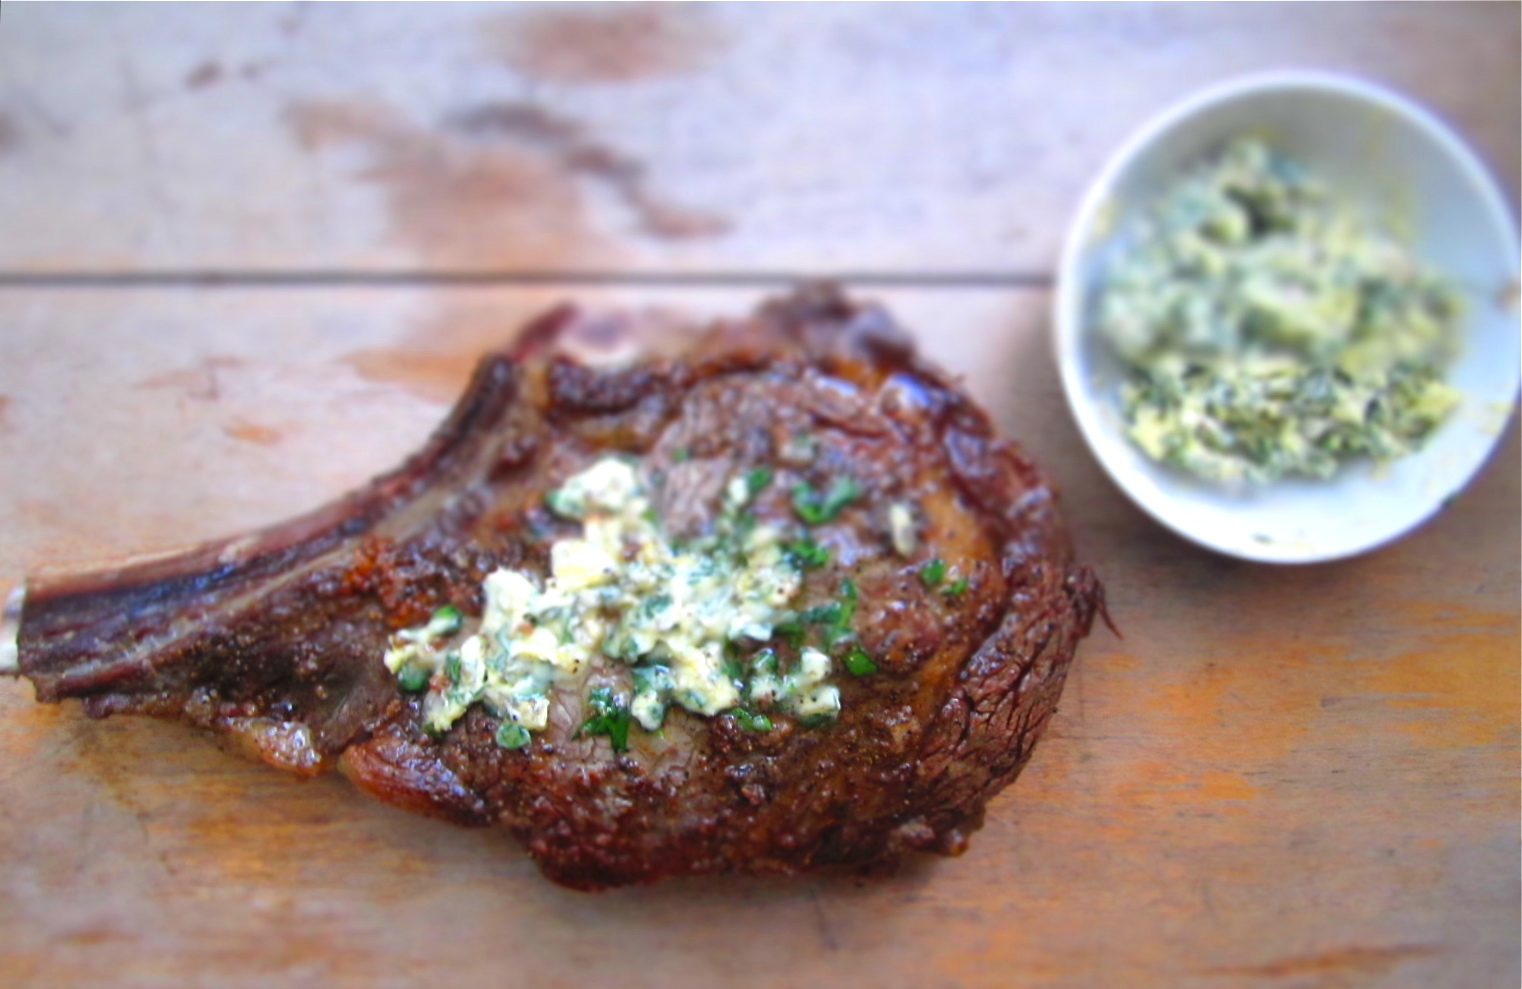 Pan-Roasted Dry-Aged Rib Eye Steak with Parsley Butter